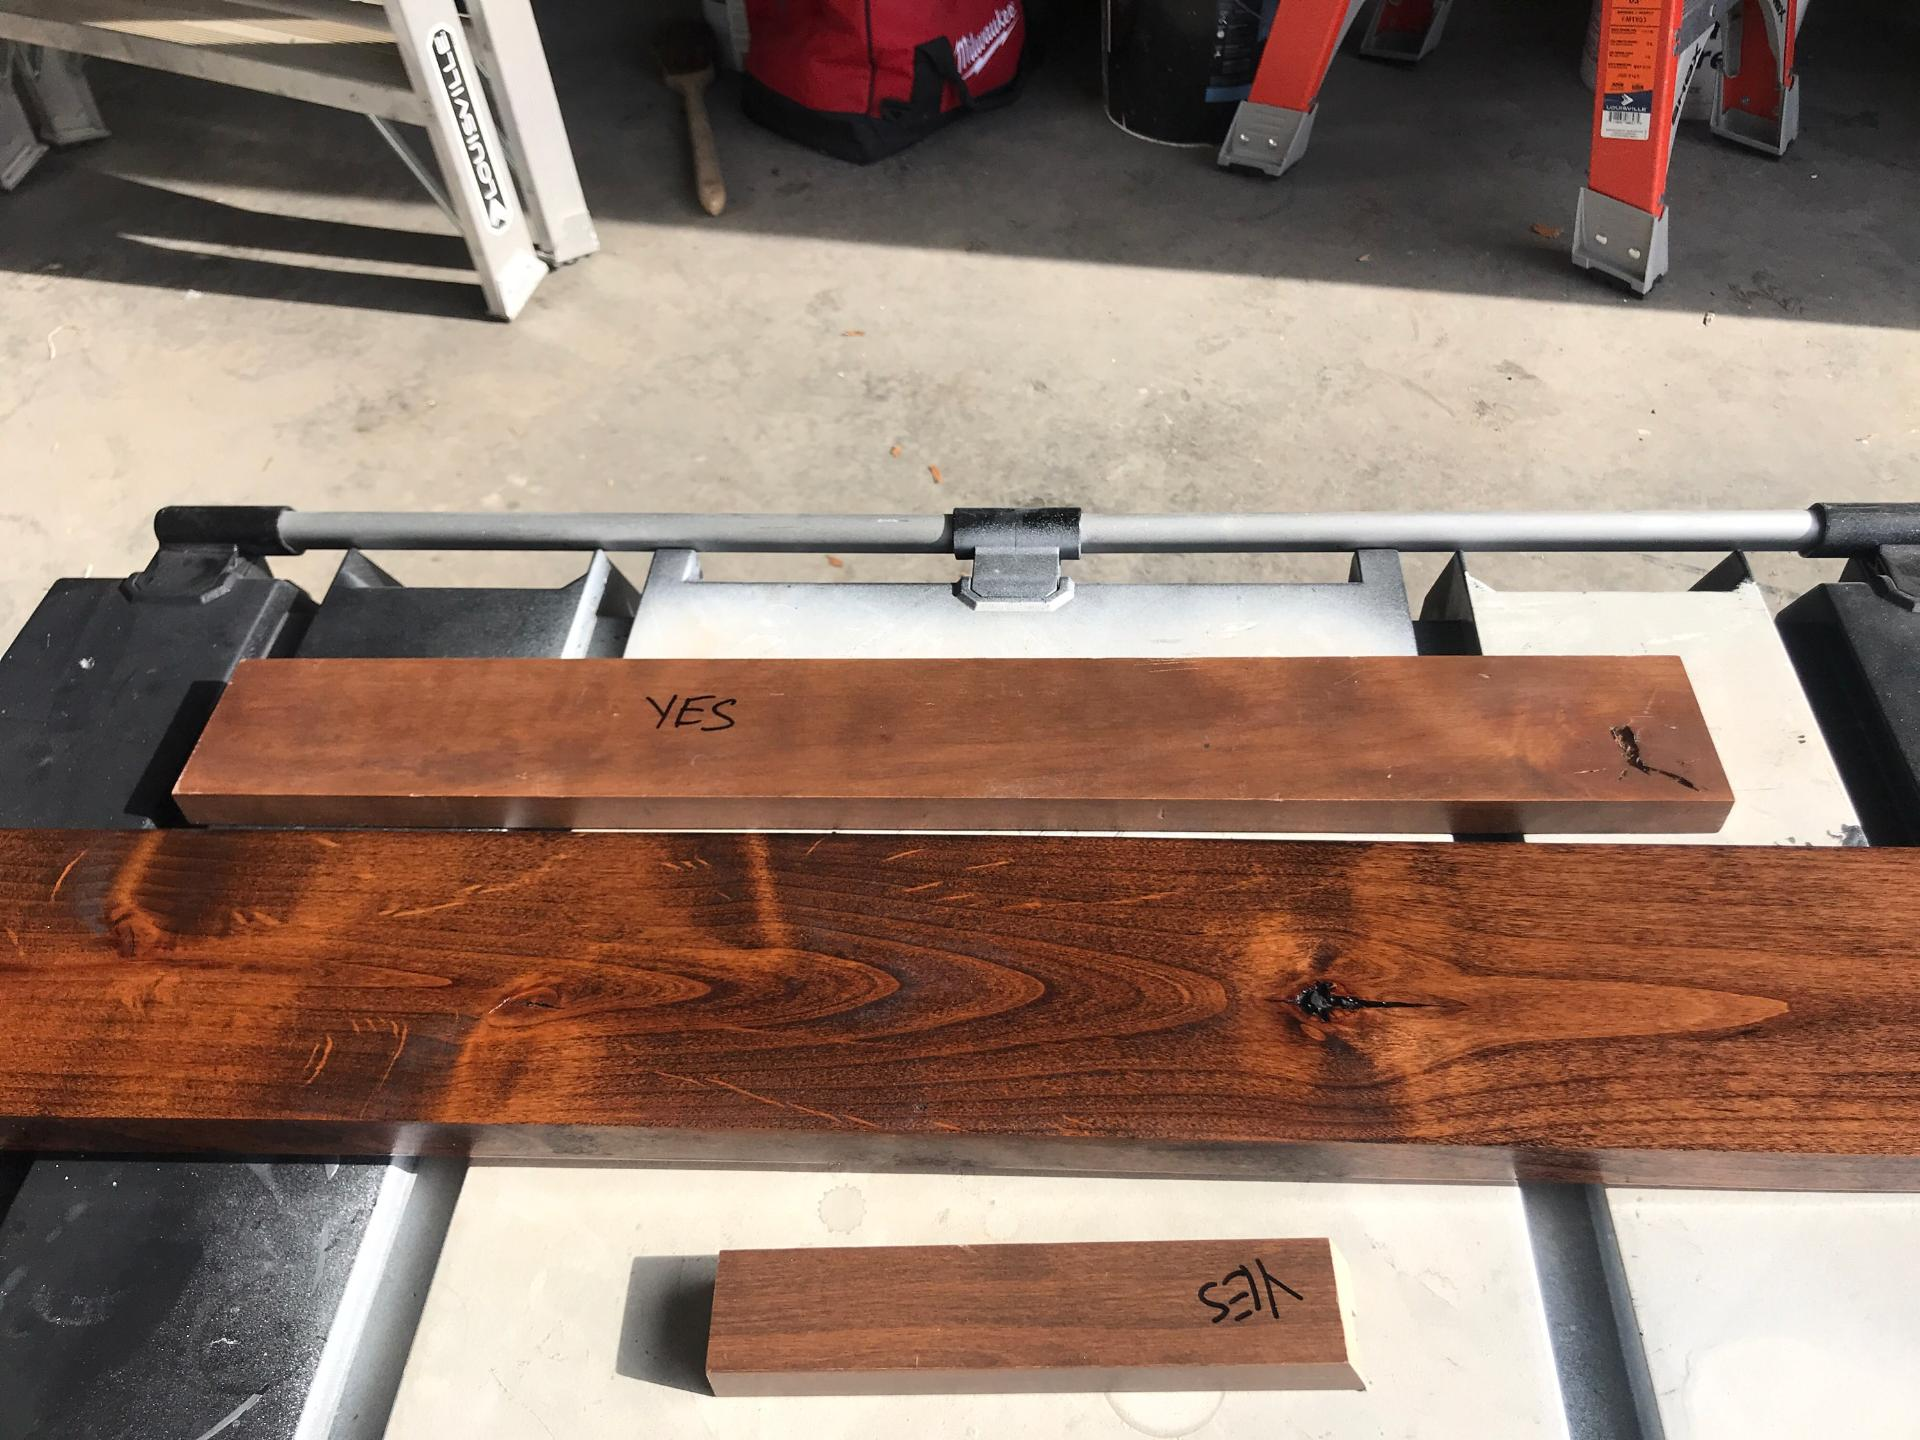 Why is the wood staining differently on a couple of boards-571865077_01.jpg